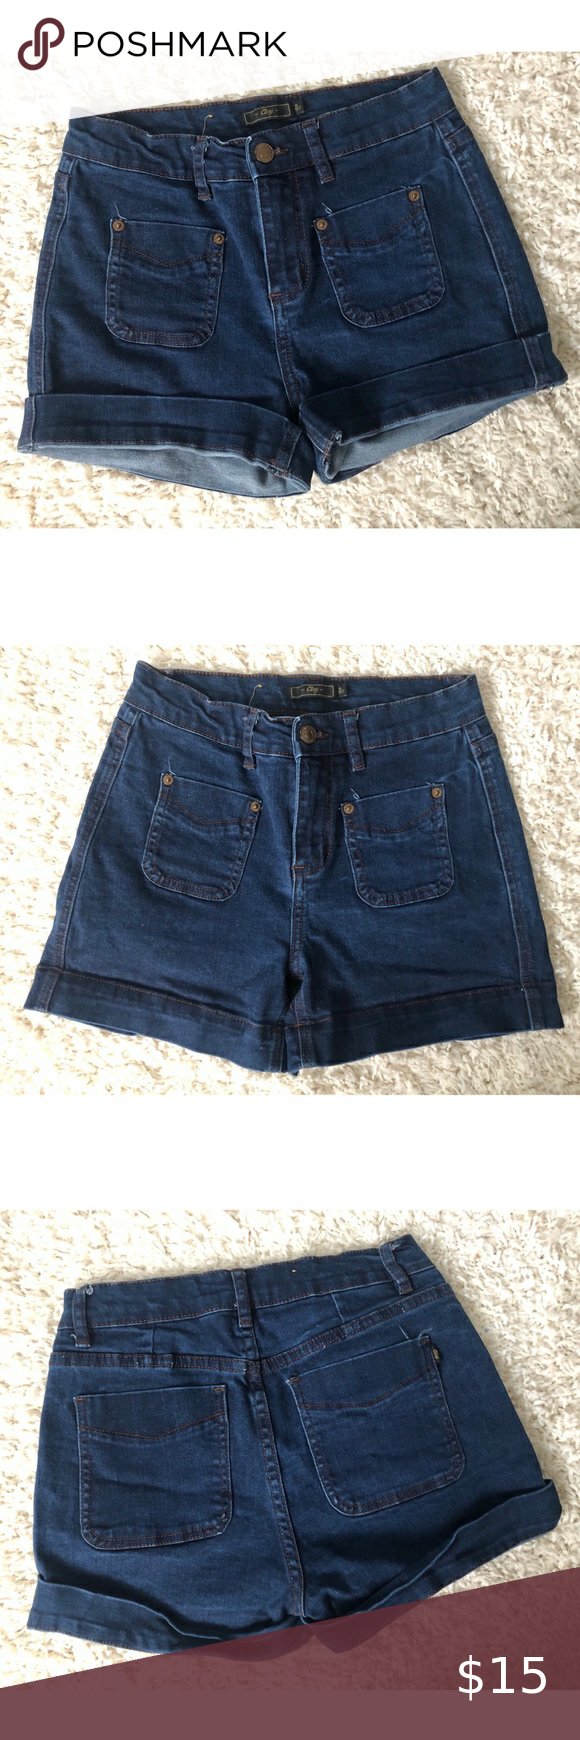 Obey Jean Shorts in 2020 Obey jeans, Jean shorts, Shorts